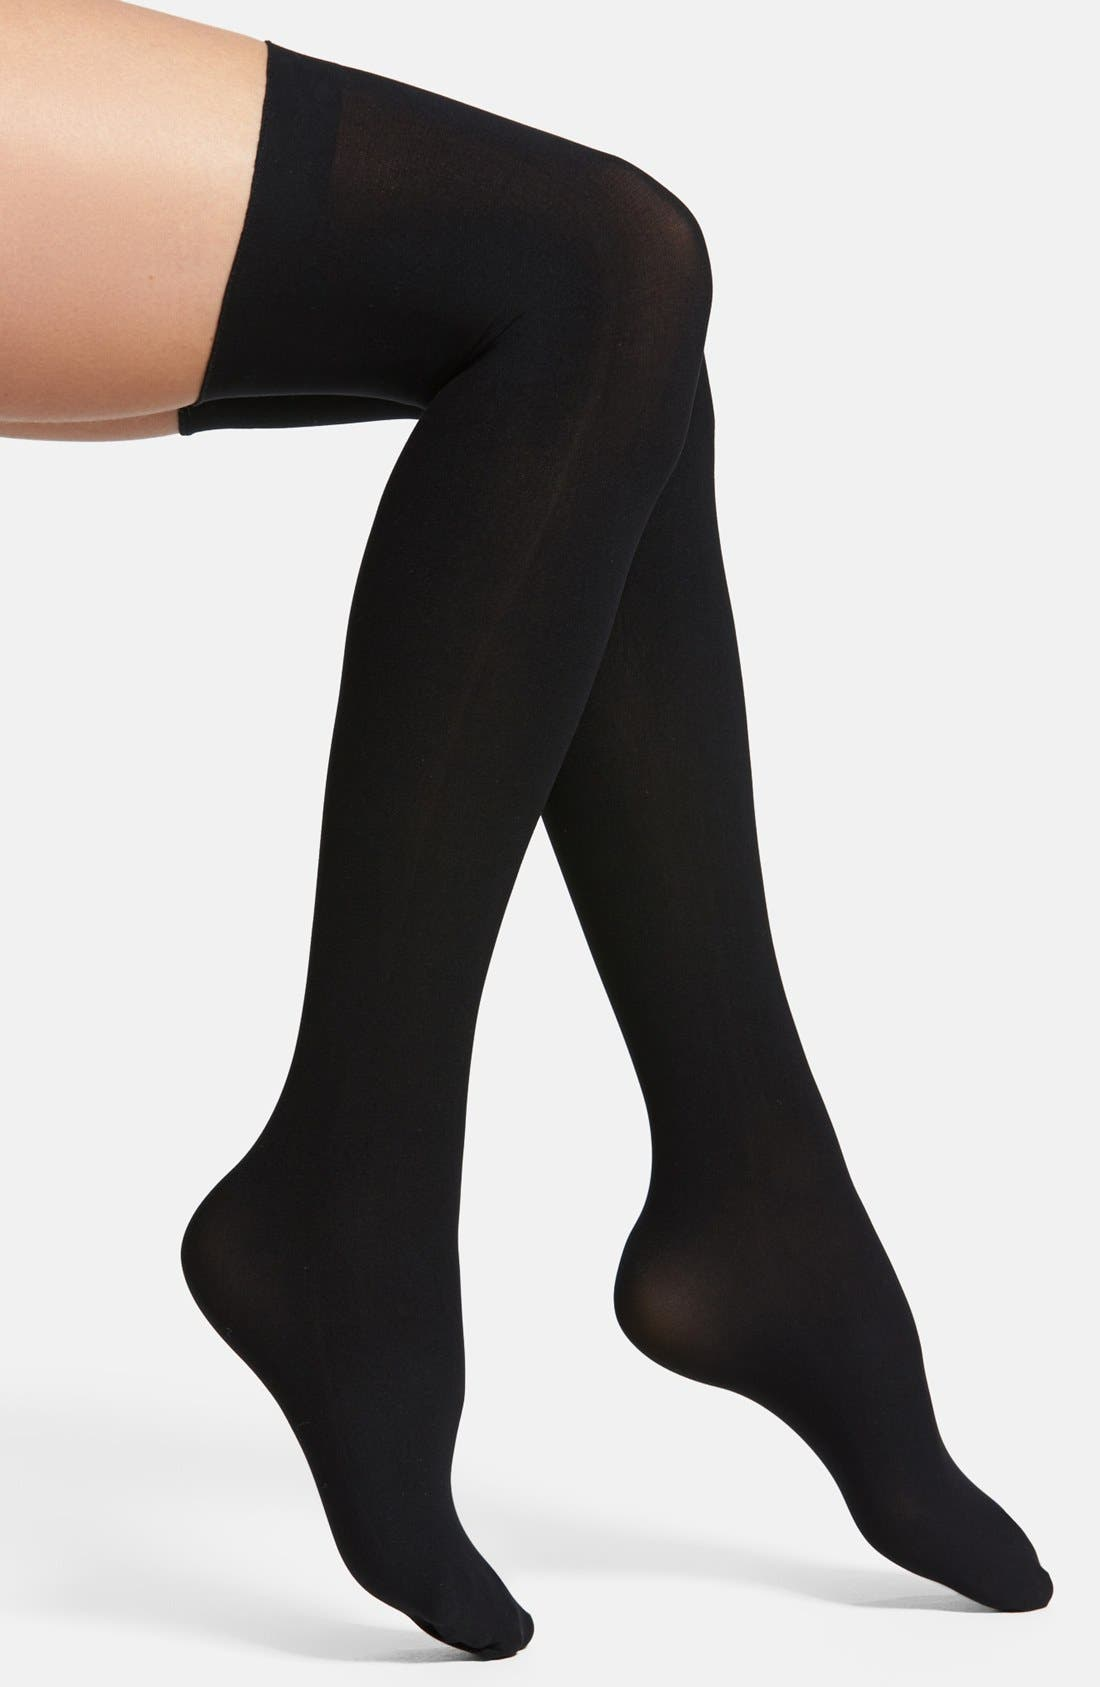 Up All Night Thigh High Socks,                             Main thumbnail 1, color,                             BLACK